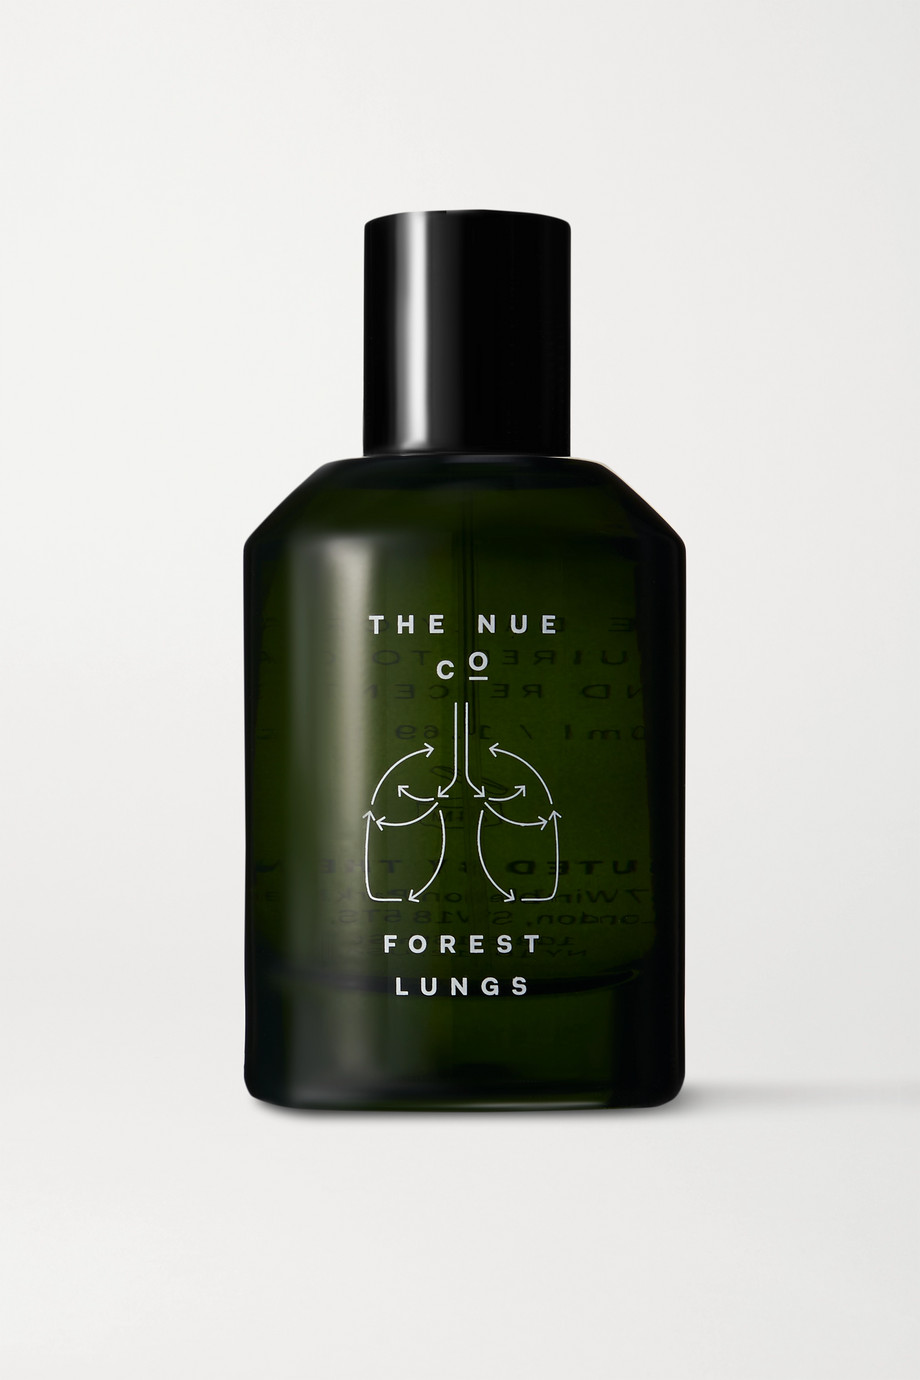 THE NUE CO. Forest Lungs, 50ml